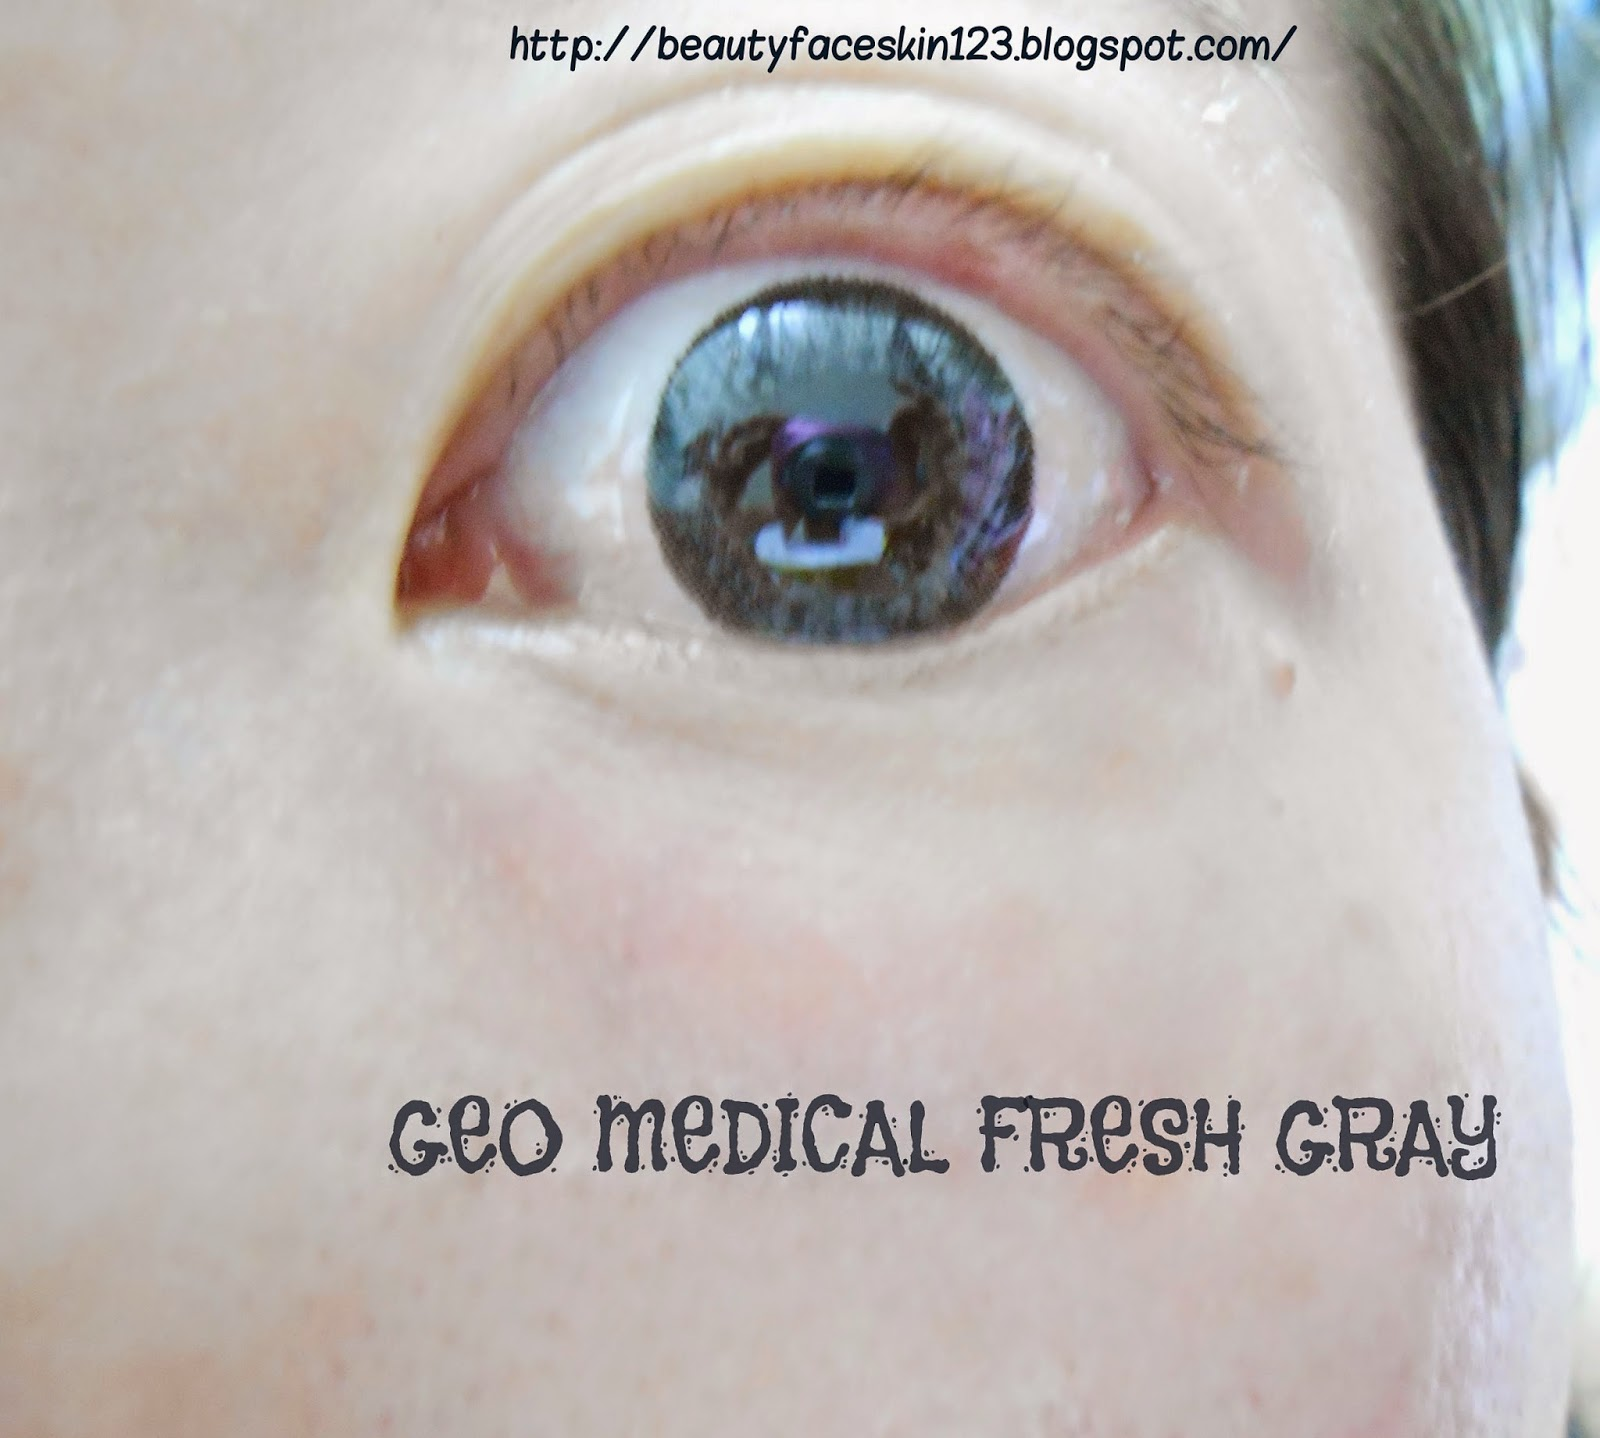 REVIEW ON GEO MEDICAL FRESH GRAY FROM PASTEL NOODLES